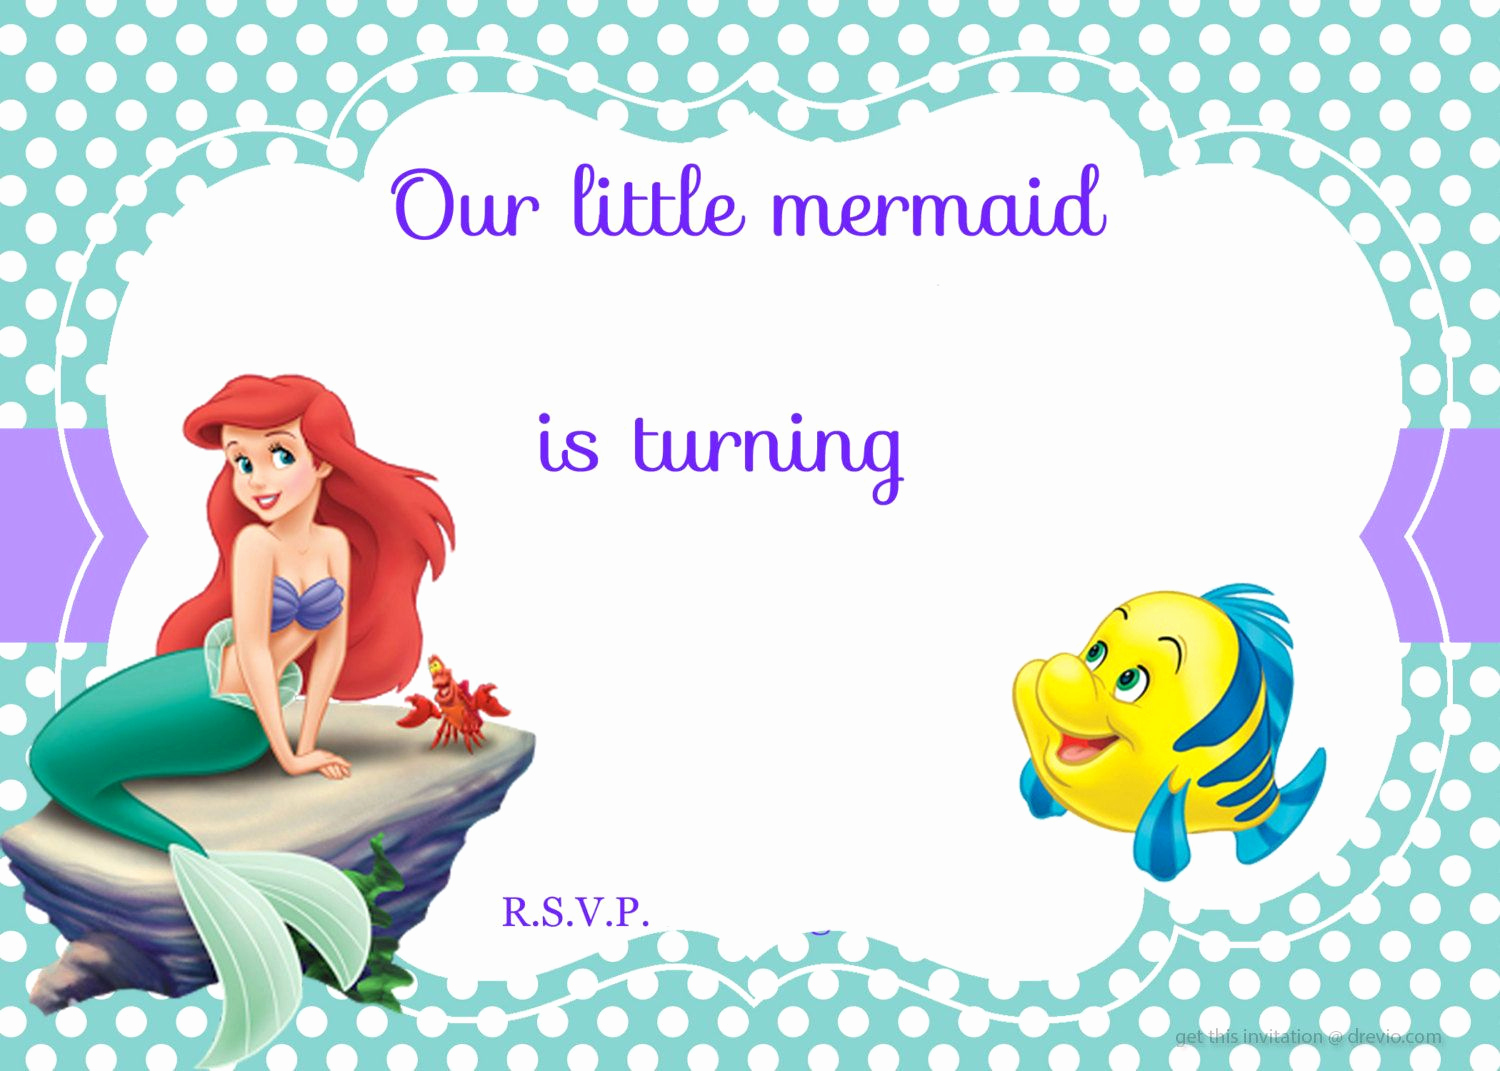 Mermaid Tail Template for Invitation Elegant Updated Free Printable Ariel the Little Mermaid